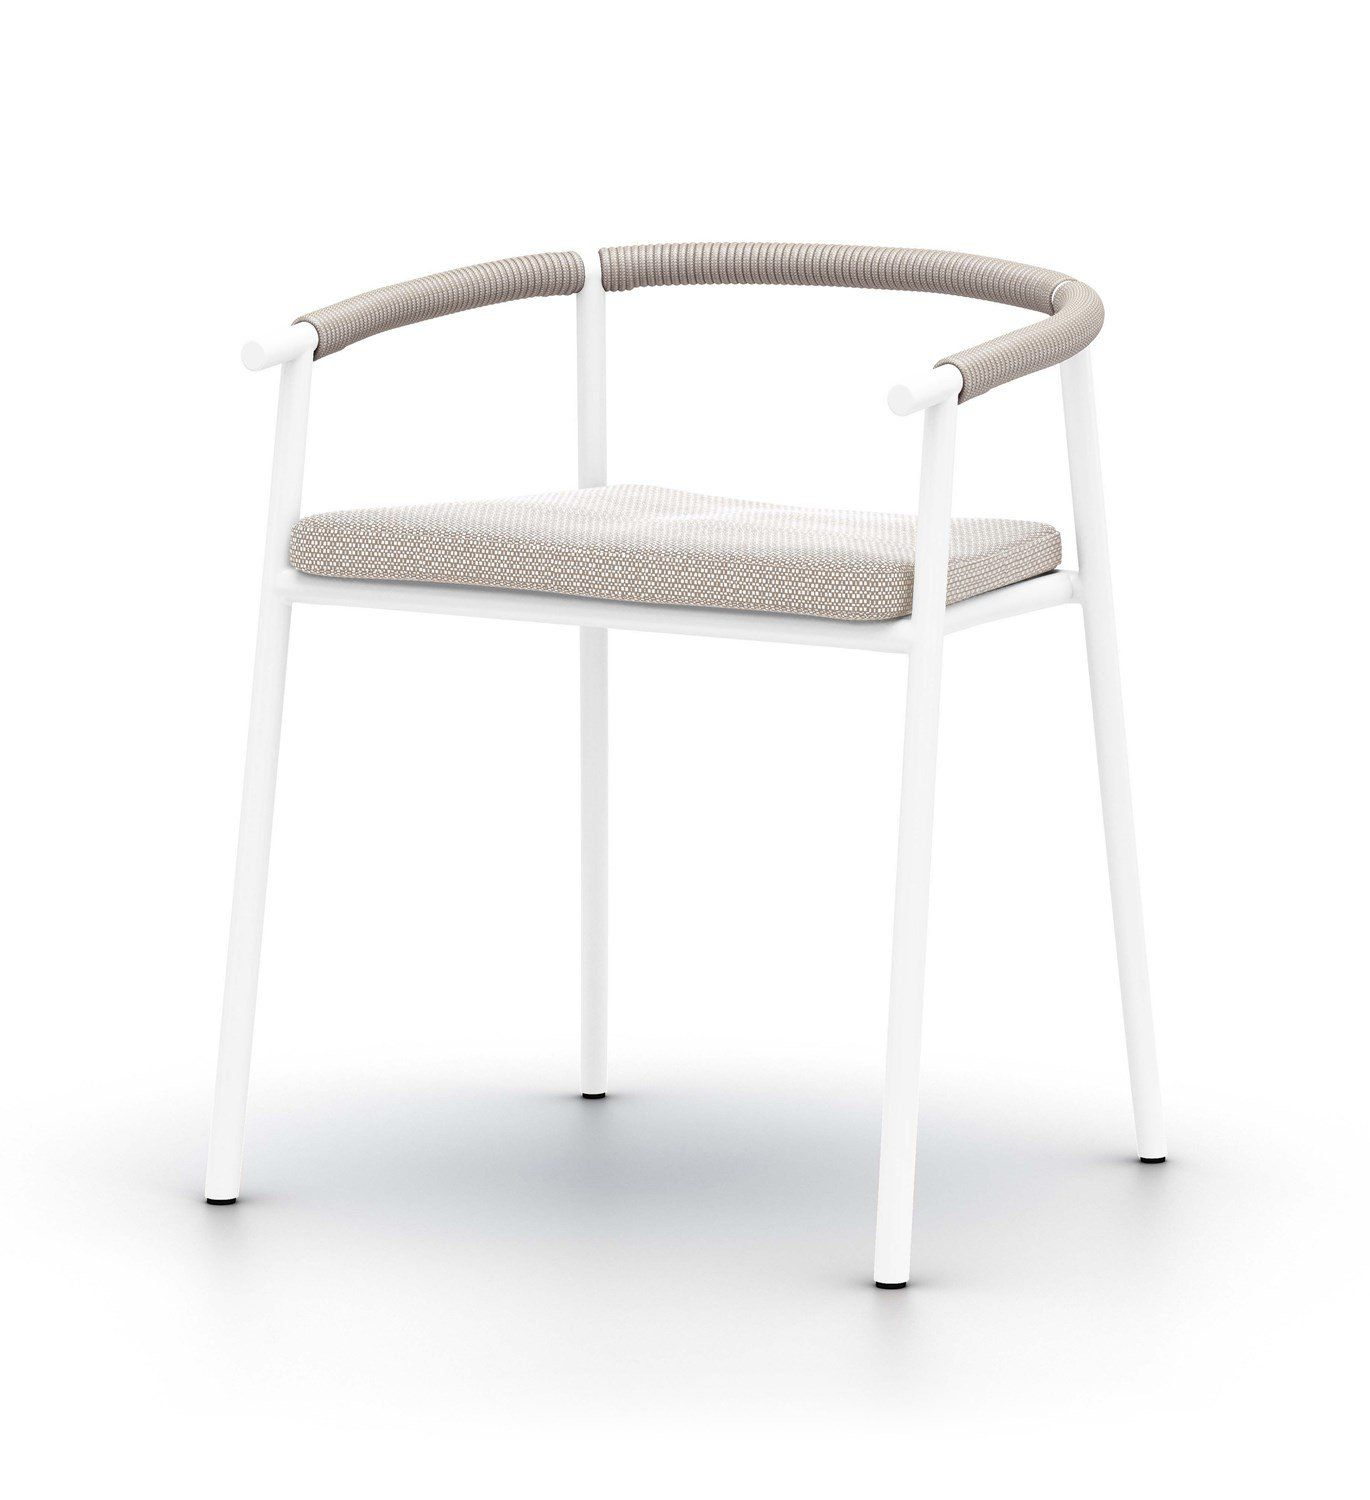 Chord Dining Chair In White In 2021 Outdoor Dining Chairs Dining Chairs Chair